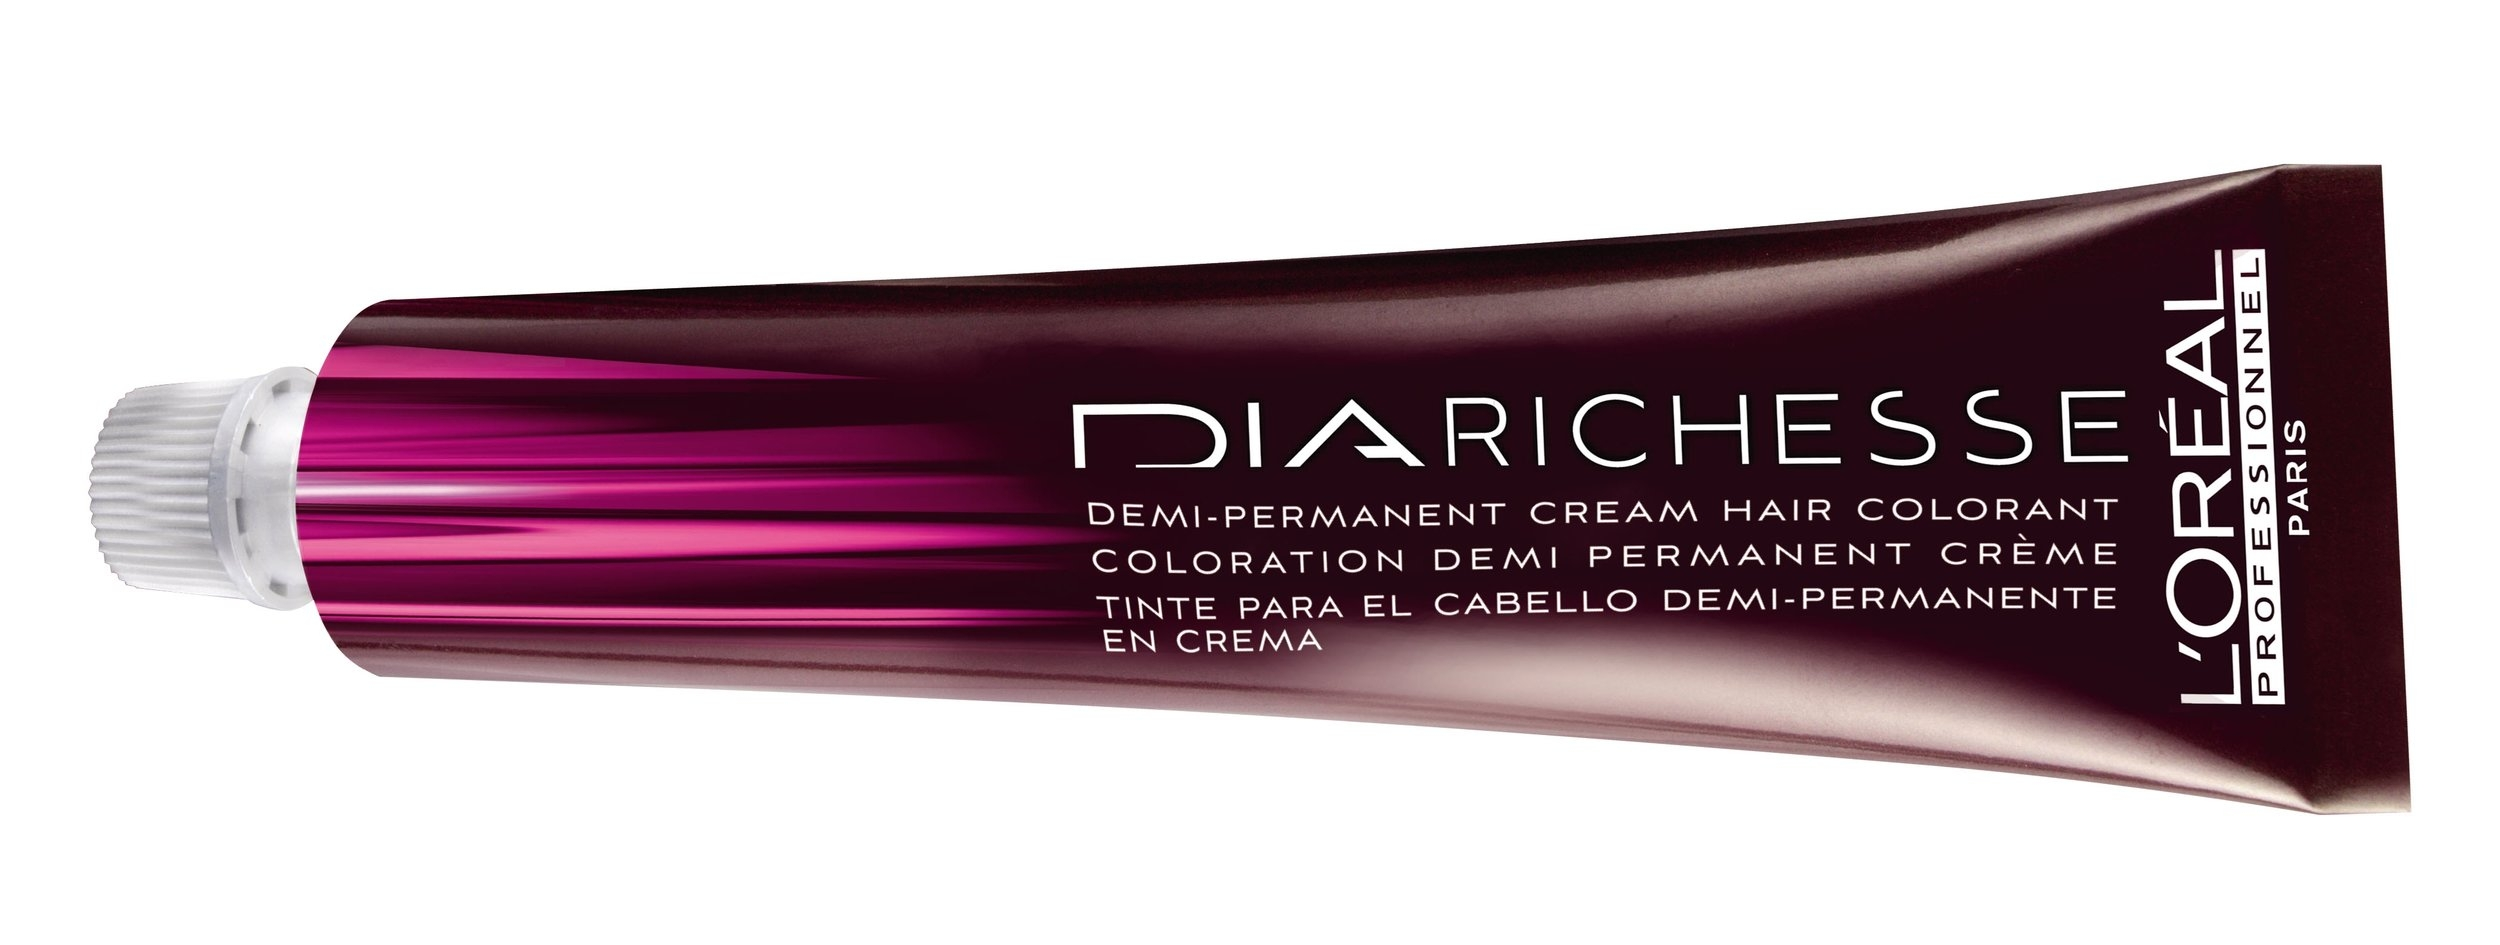 Dia Richesse - DIA Richesse and DIA Light are L'Oréal Professionnel's next generation in